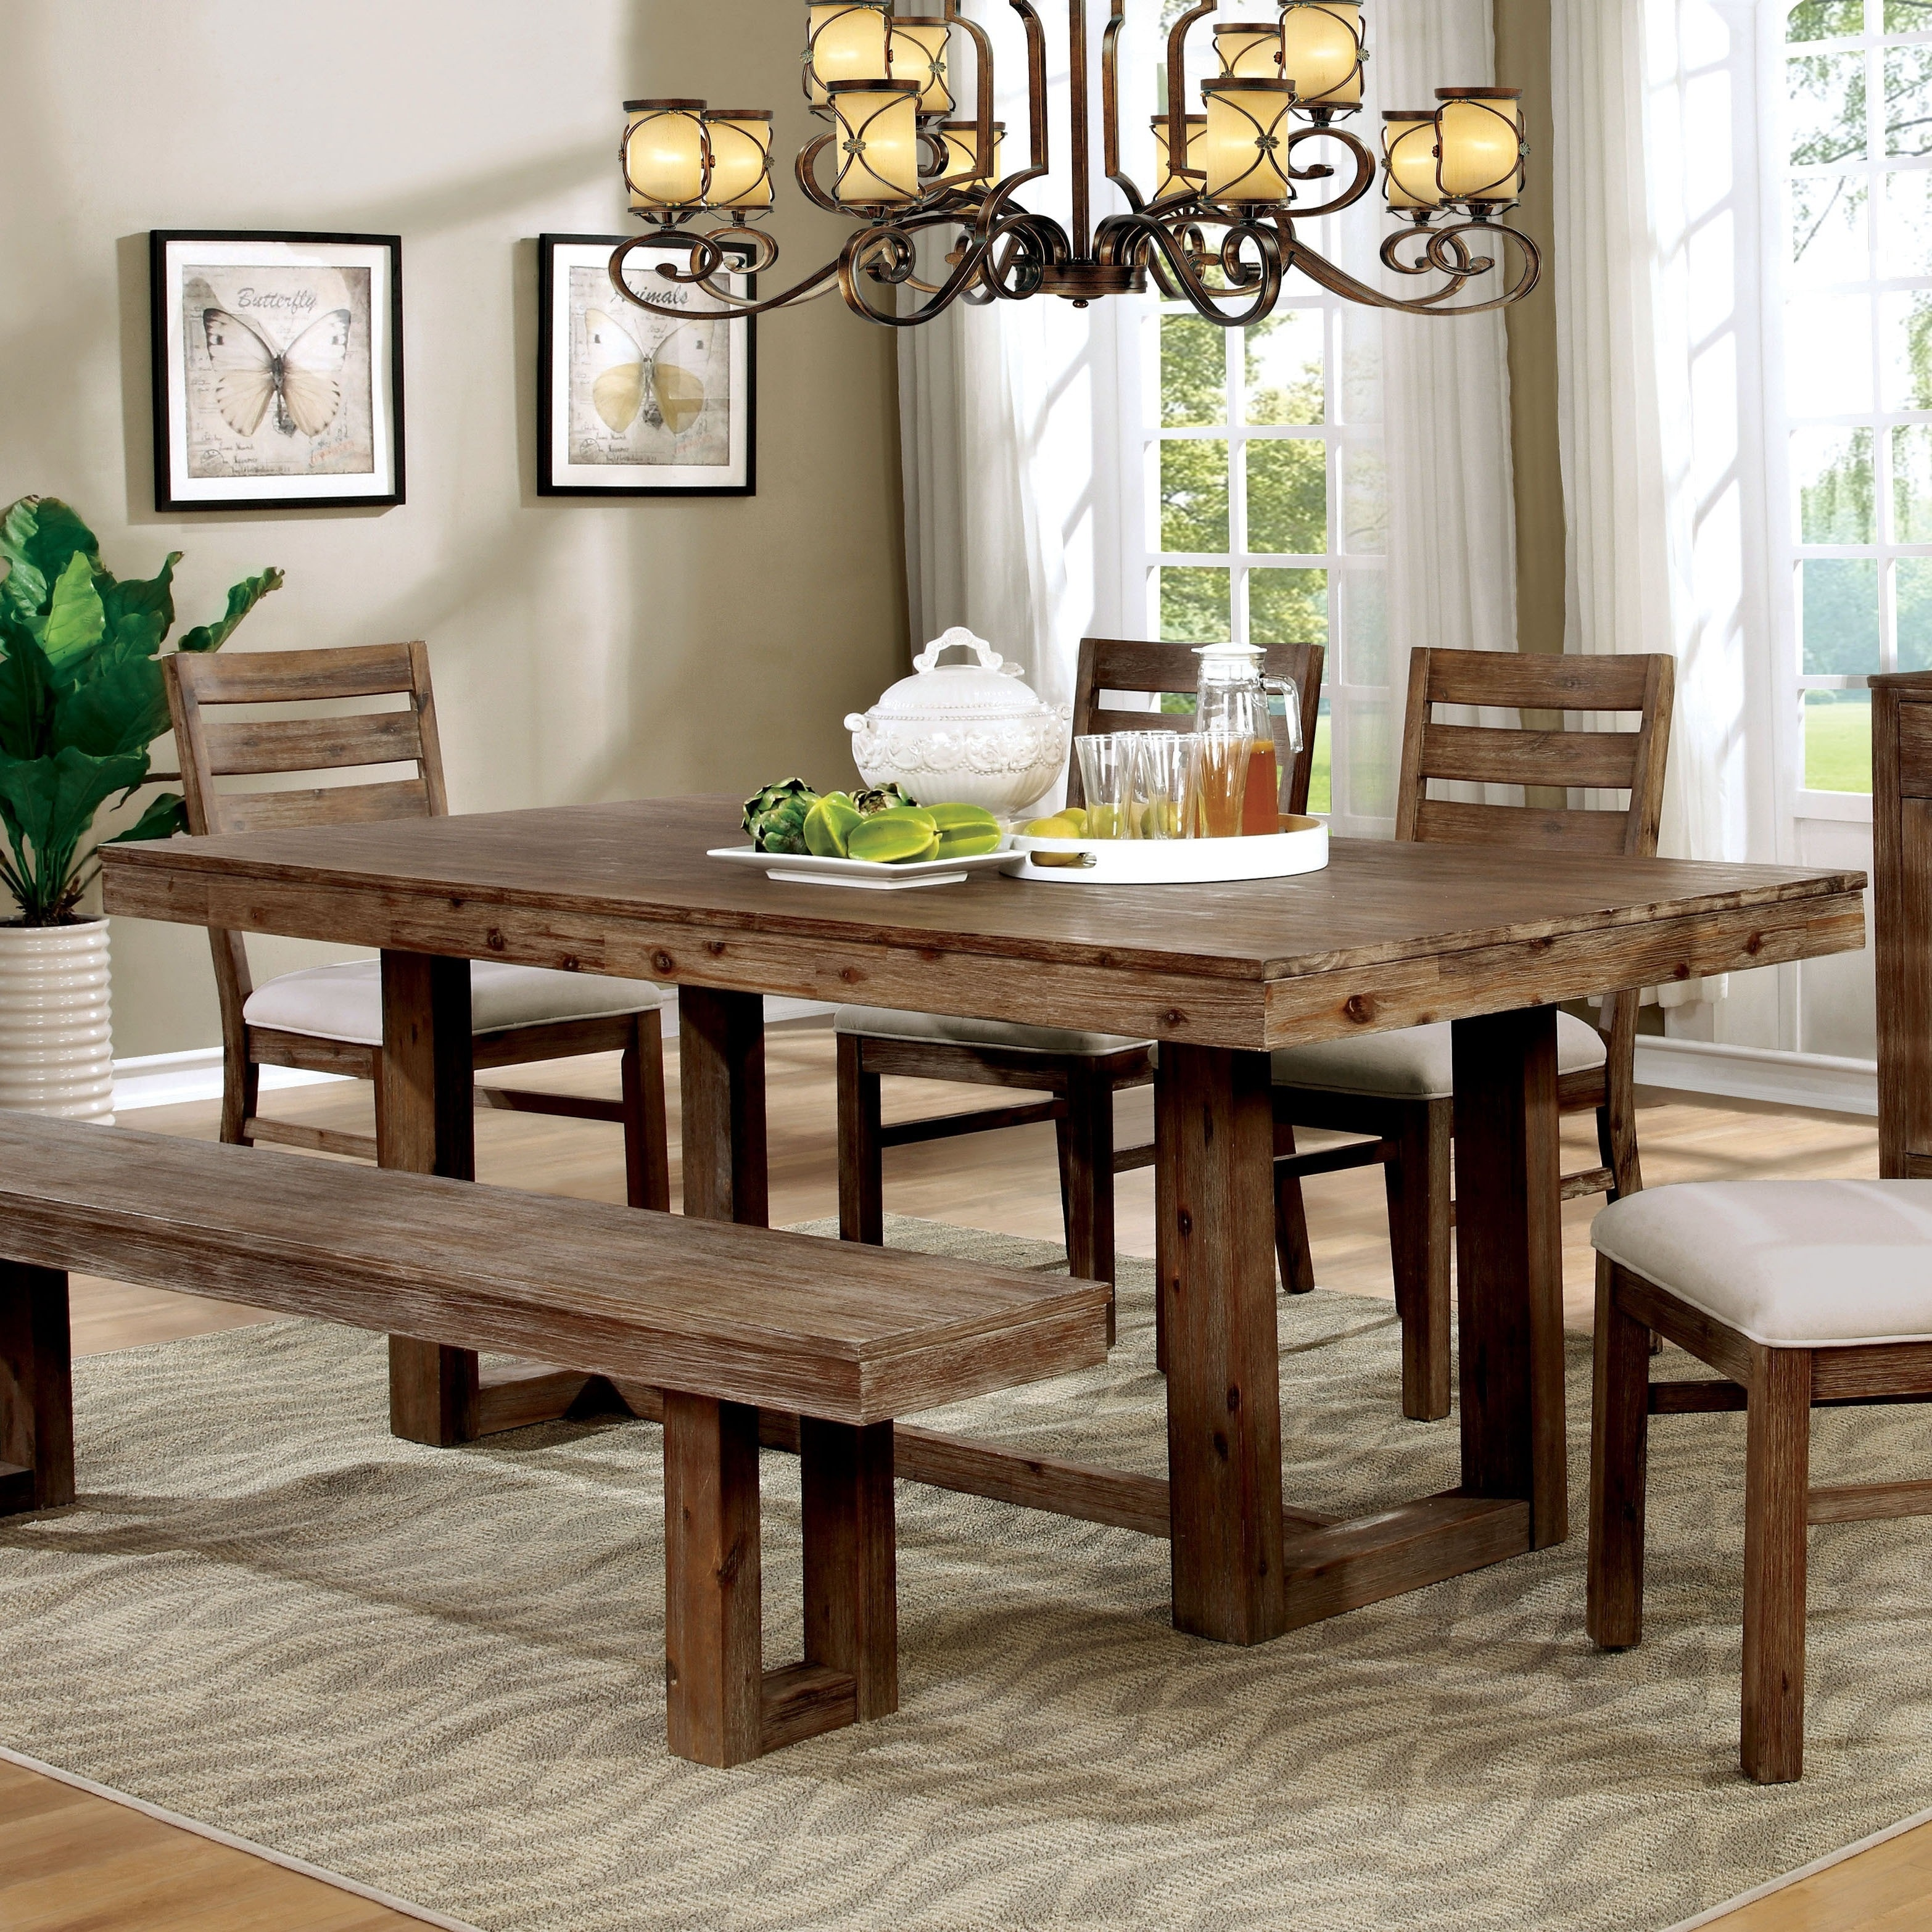 Furniture Of America Treville Rustic Plank Style Dining Table Overstock 20470312 Oak